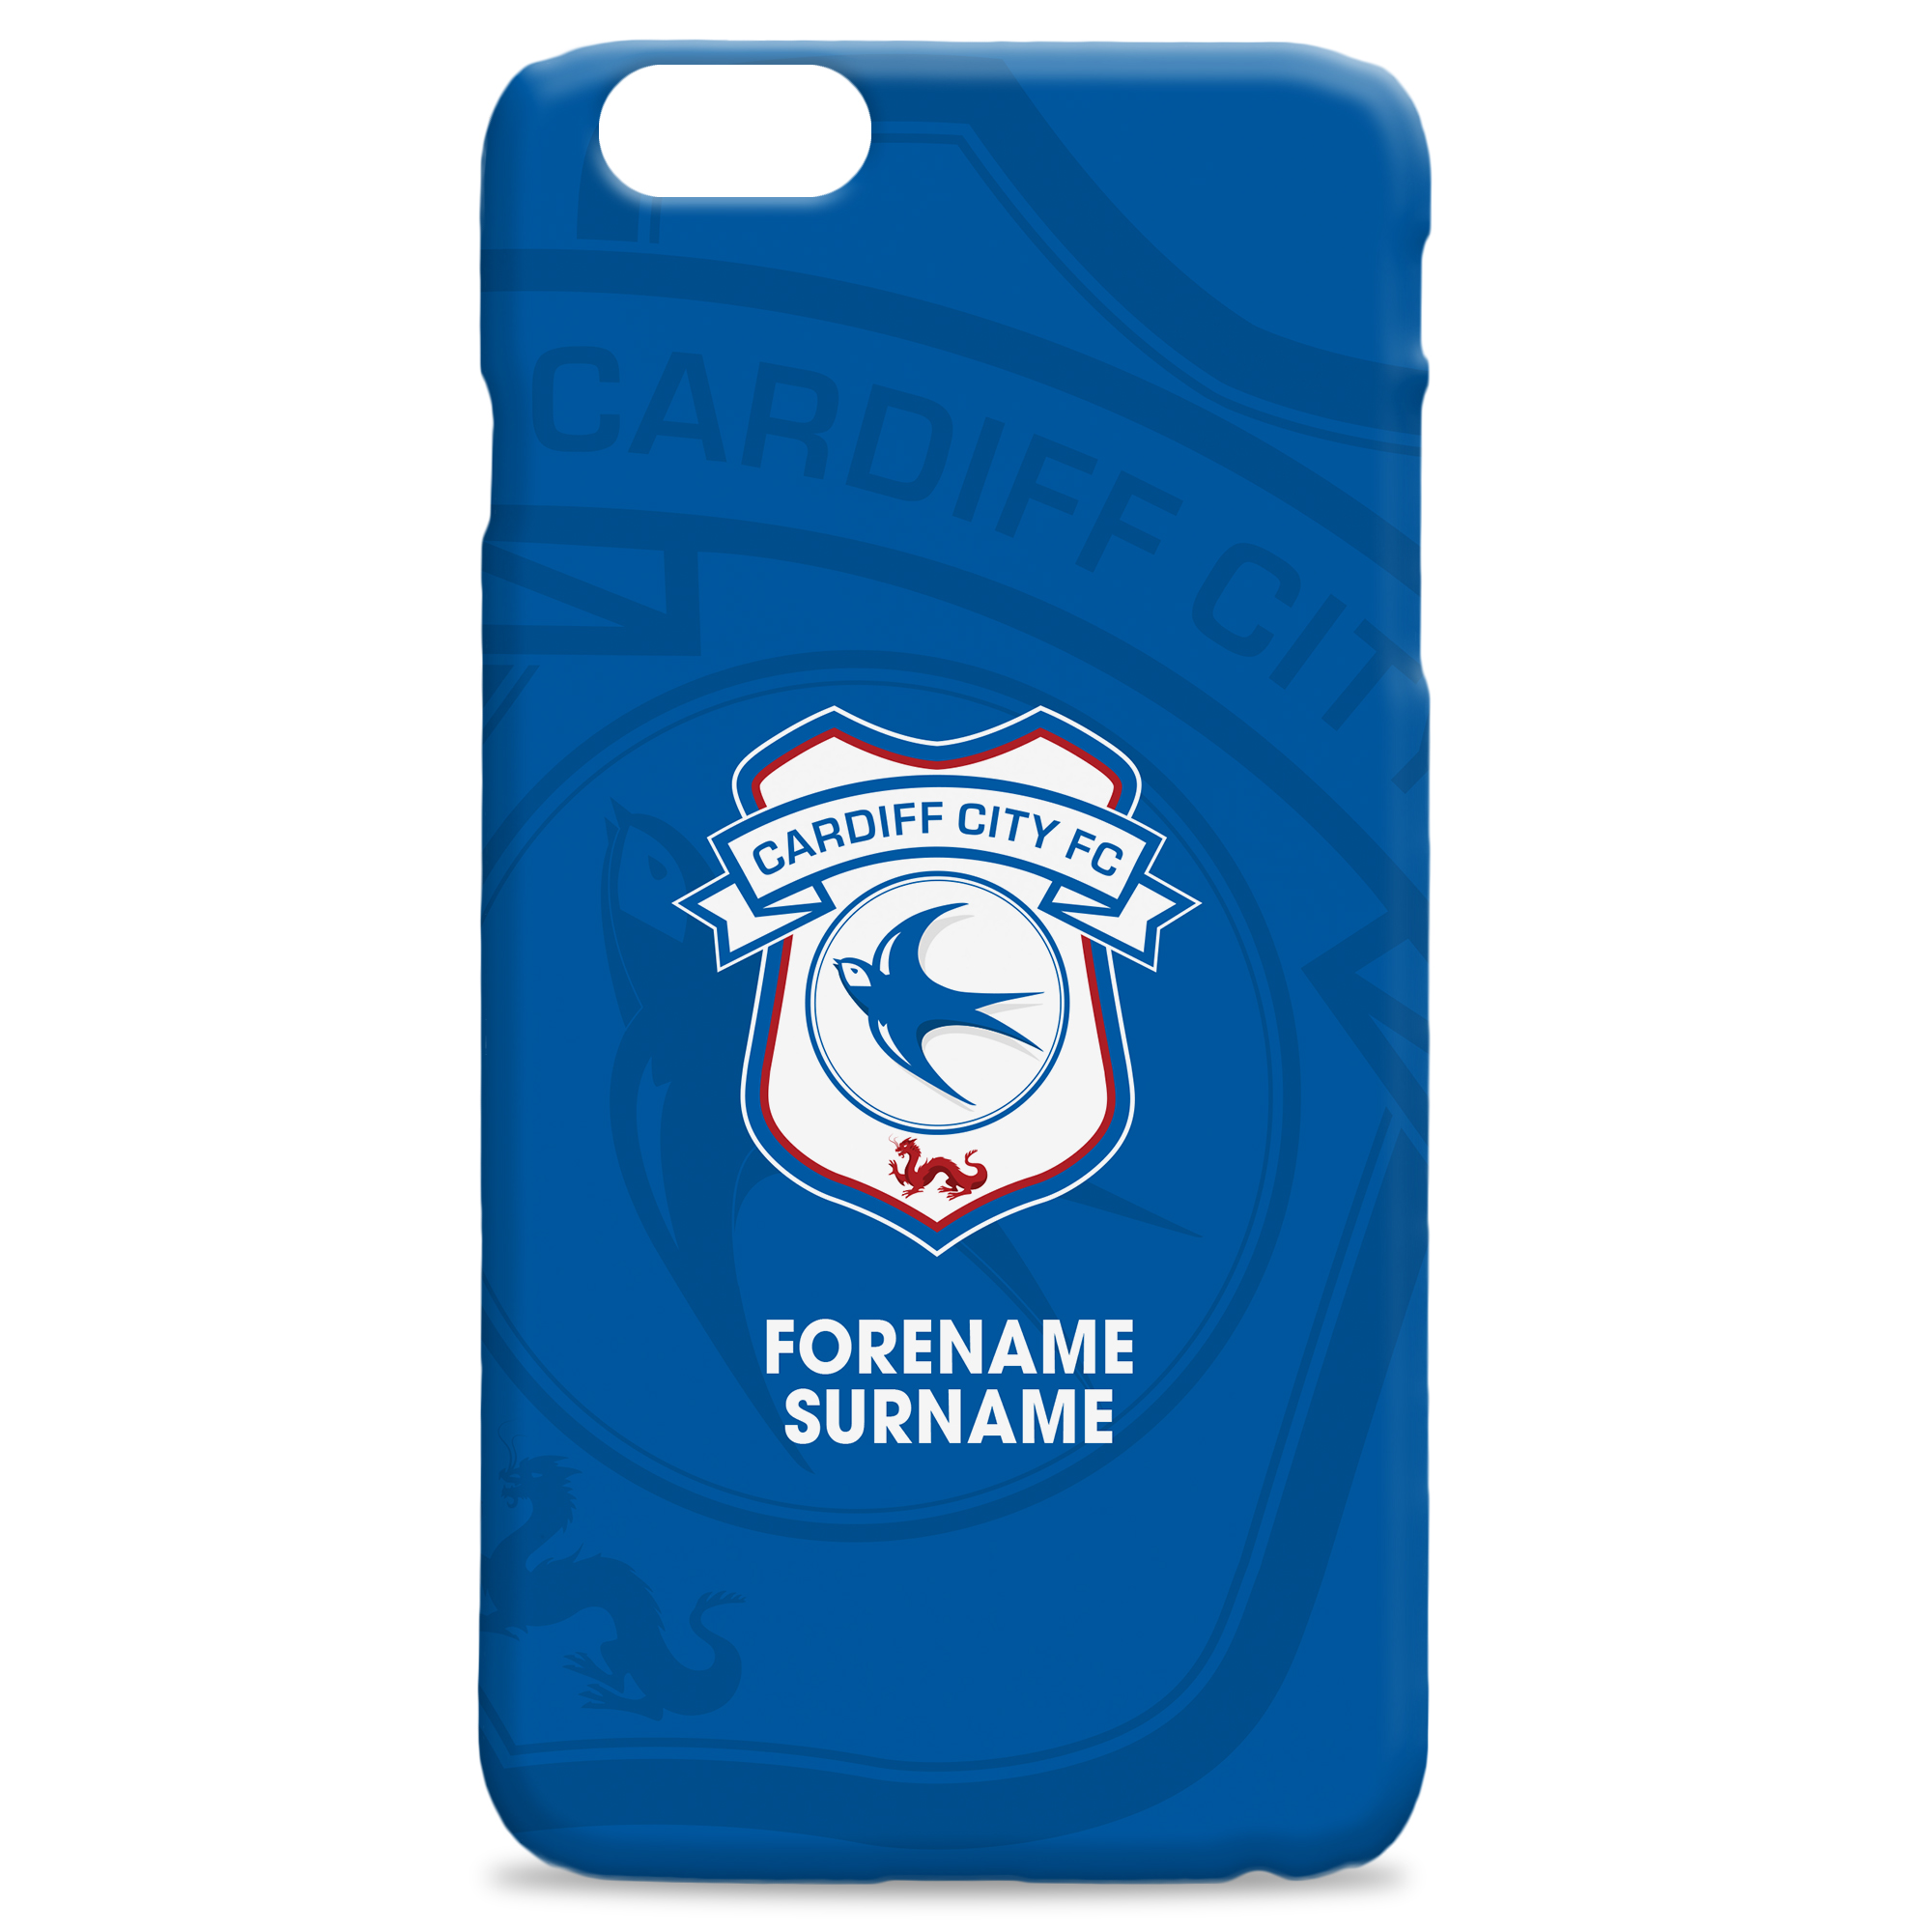 Cardiff City Bold Crest Hard Back Phone Case